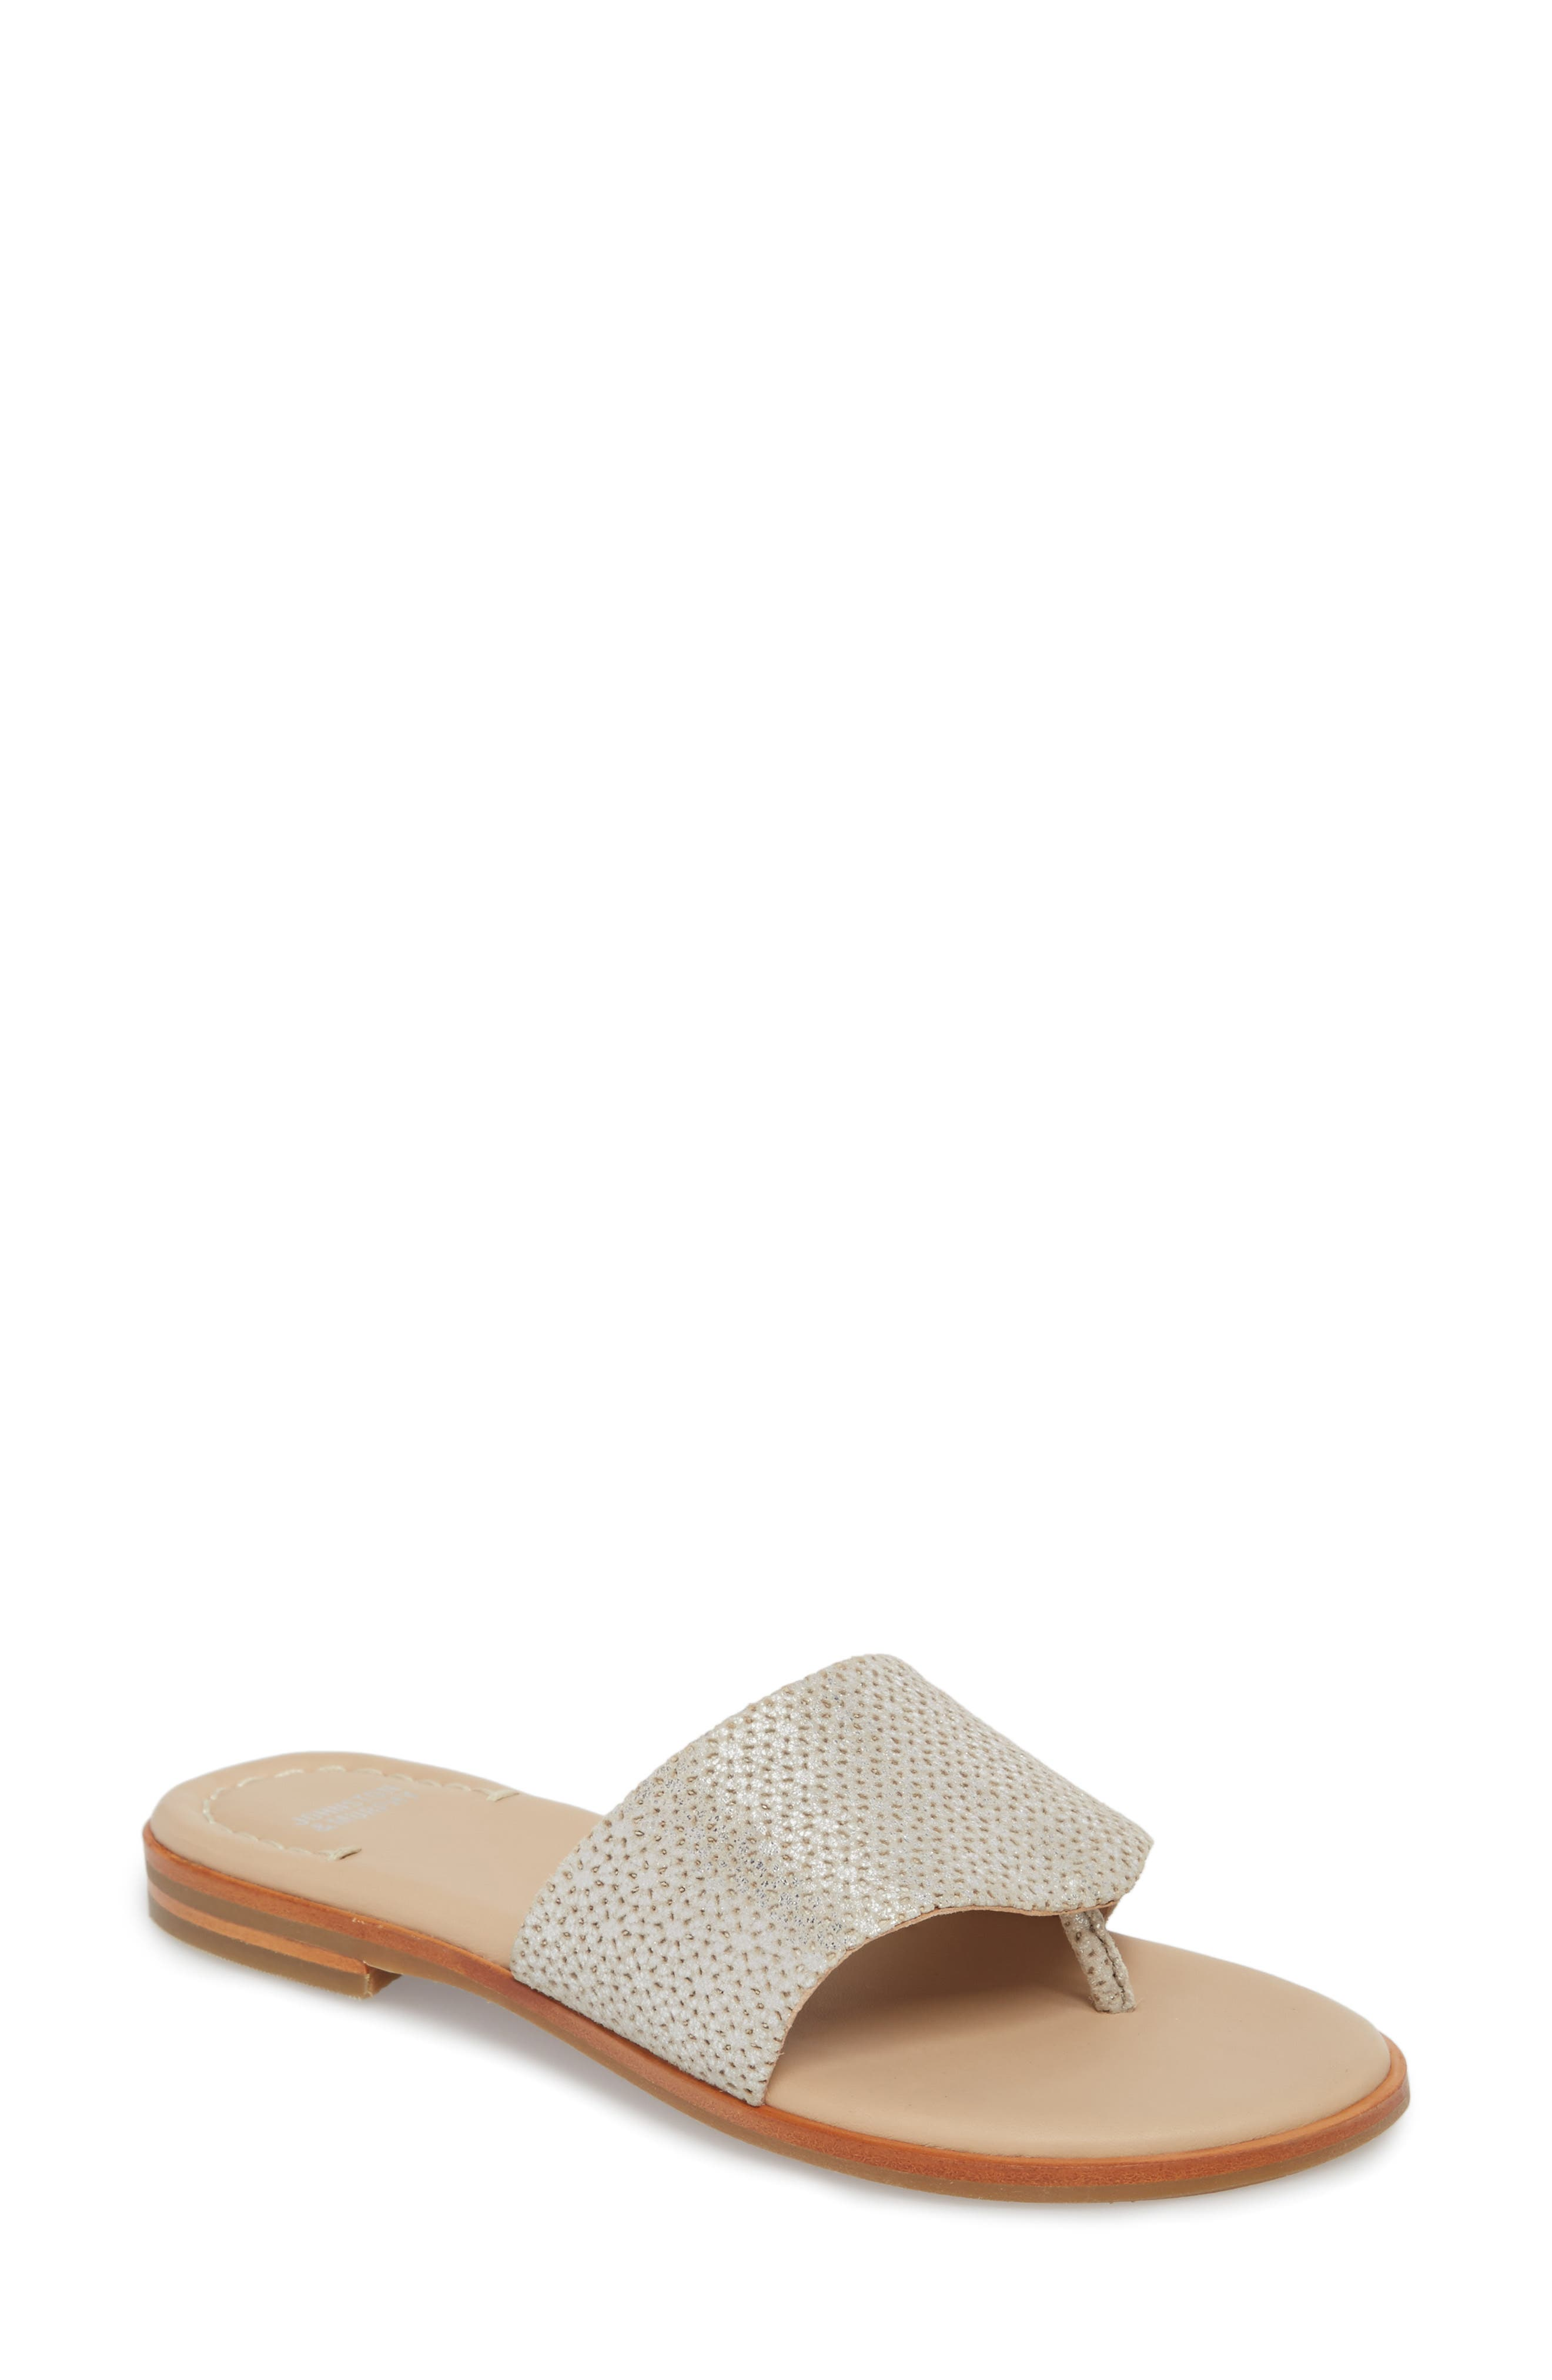 Raney Flip Flop,                             Main thumbnail 1, color,                             SILVER LASER CUT SUEDE